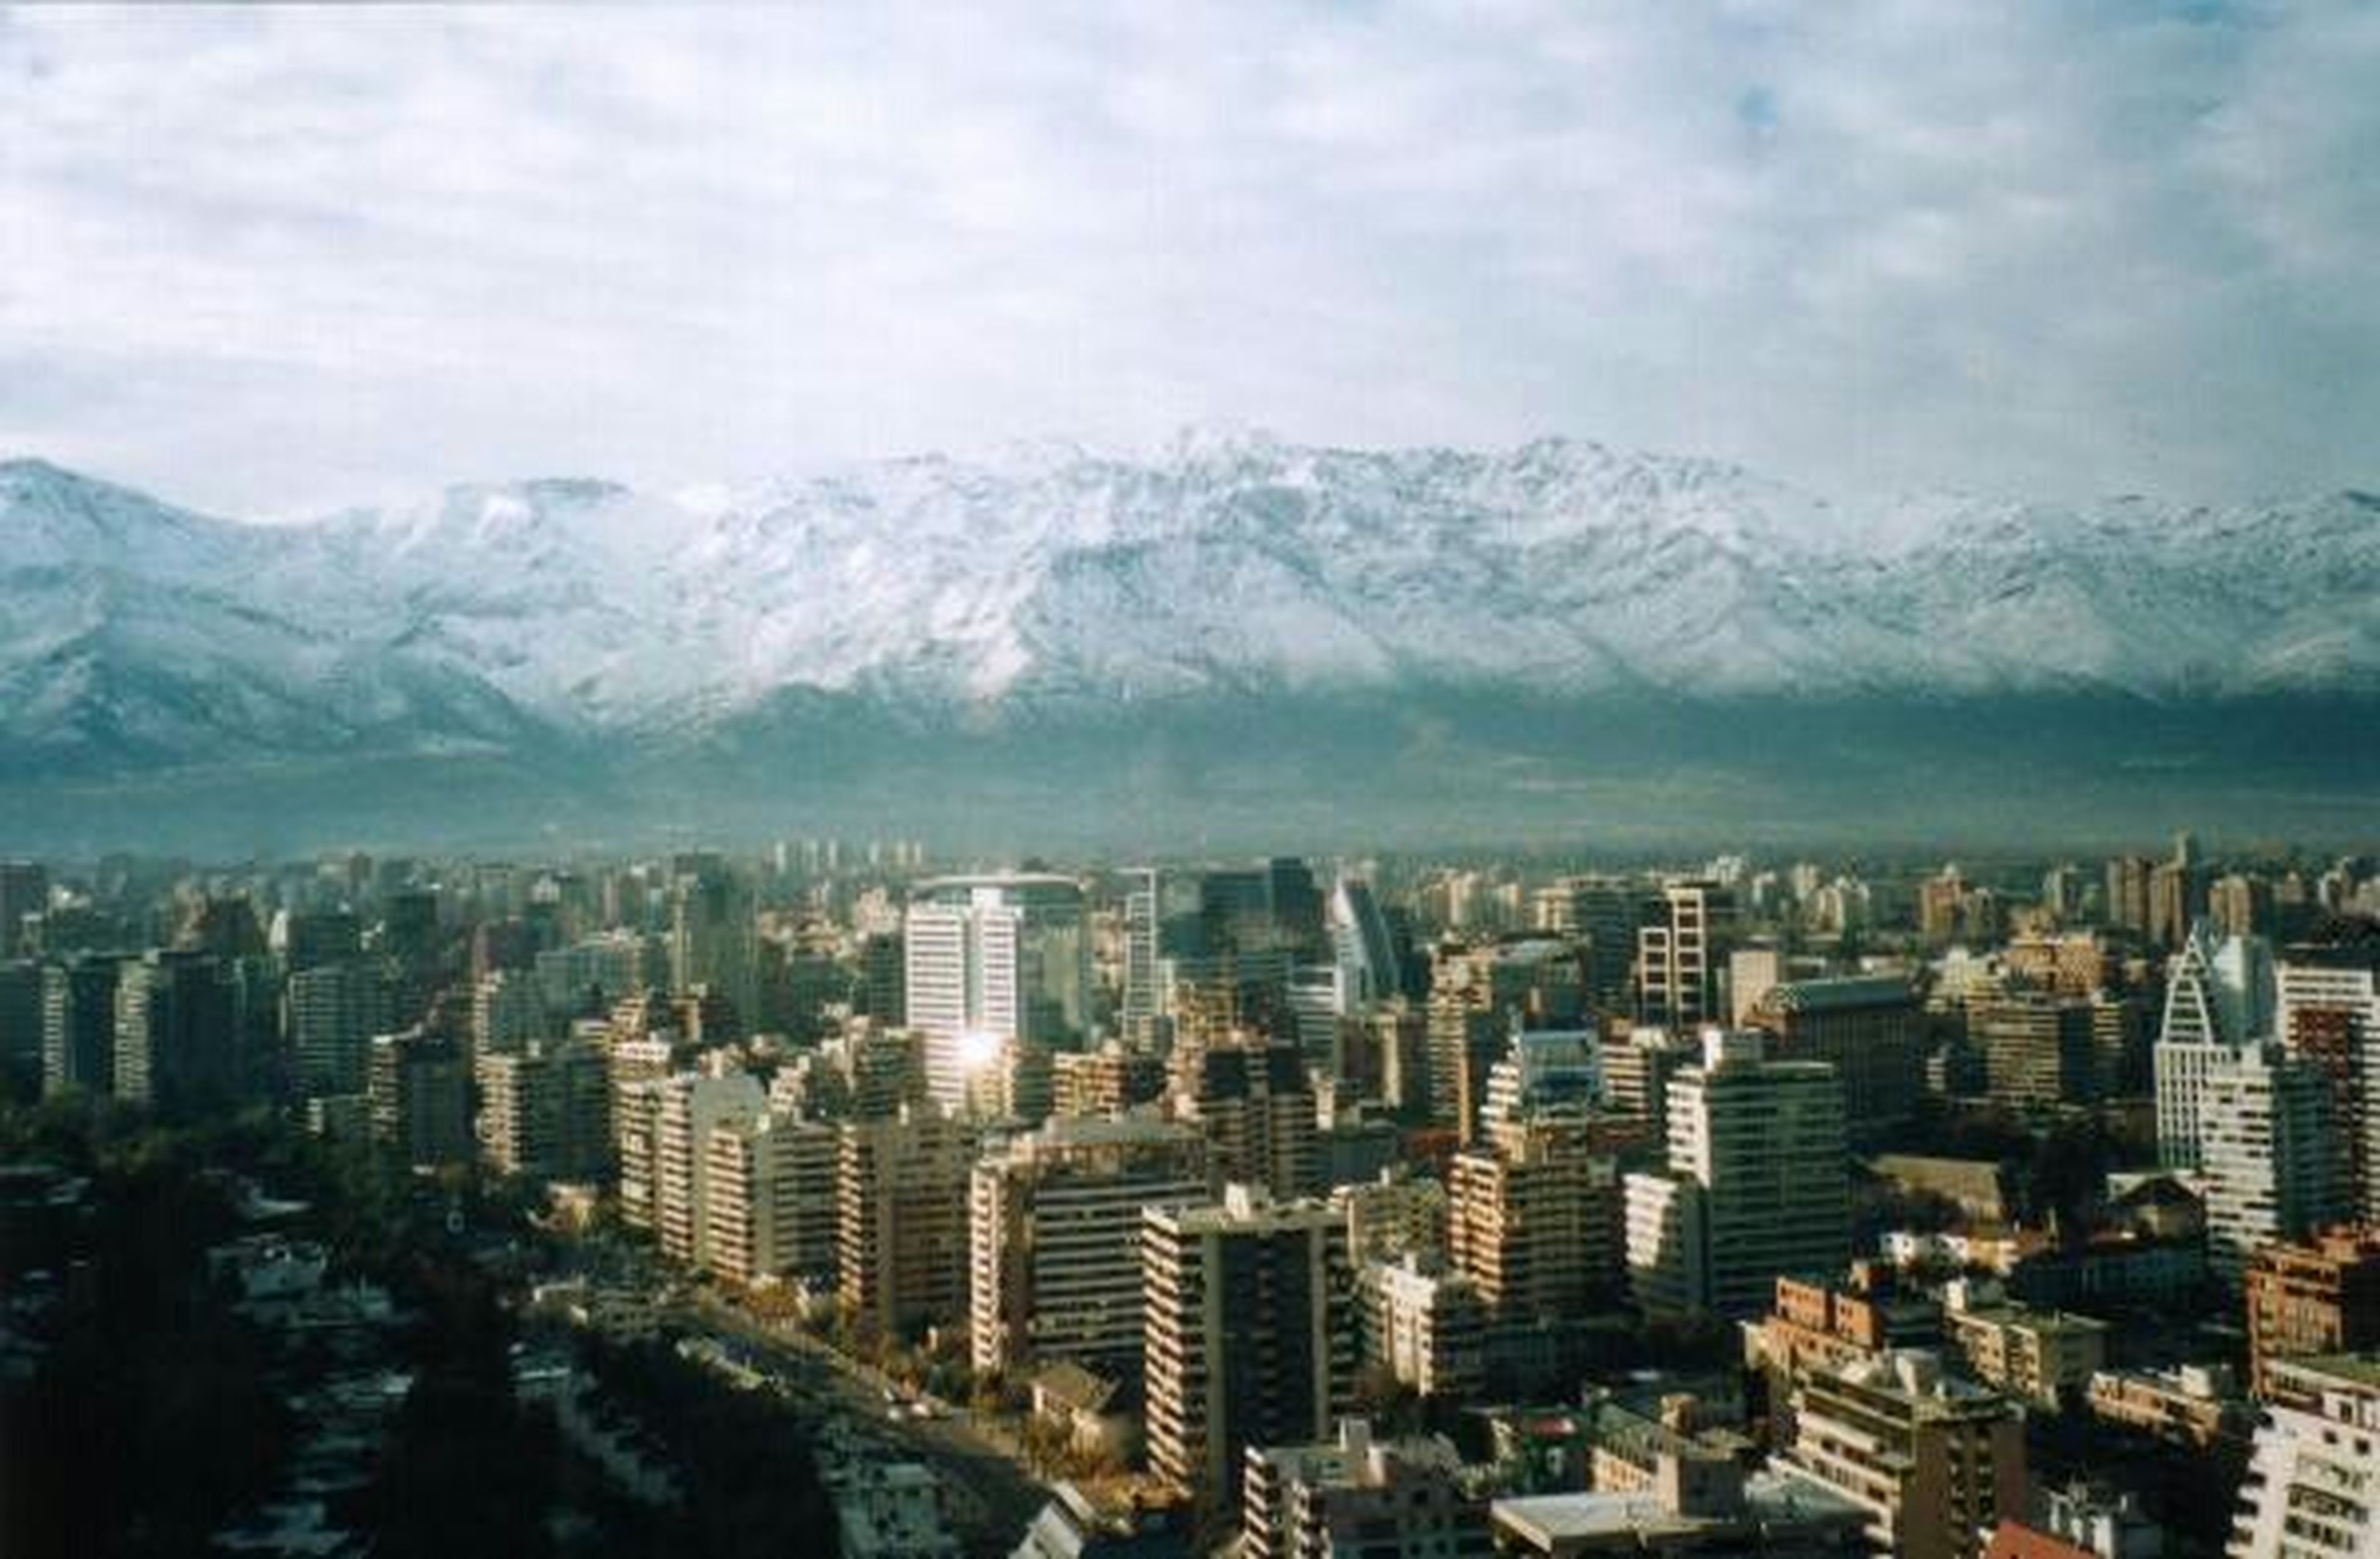 mountain, building exterior, architecture, built structure, city, winter, cityscape, cold temperature, mountain range, sky, snow, weather, cloud - sky, residential district, season, cloudy, crowded, residential building, high angle view, skyscraper